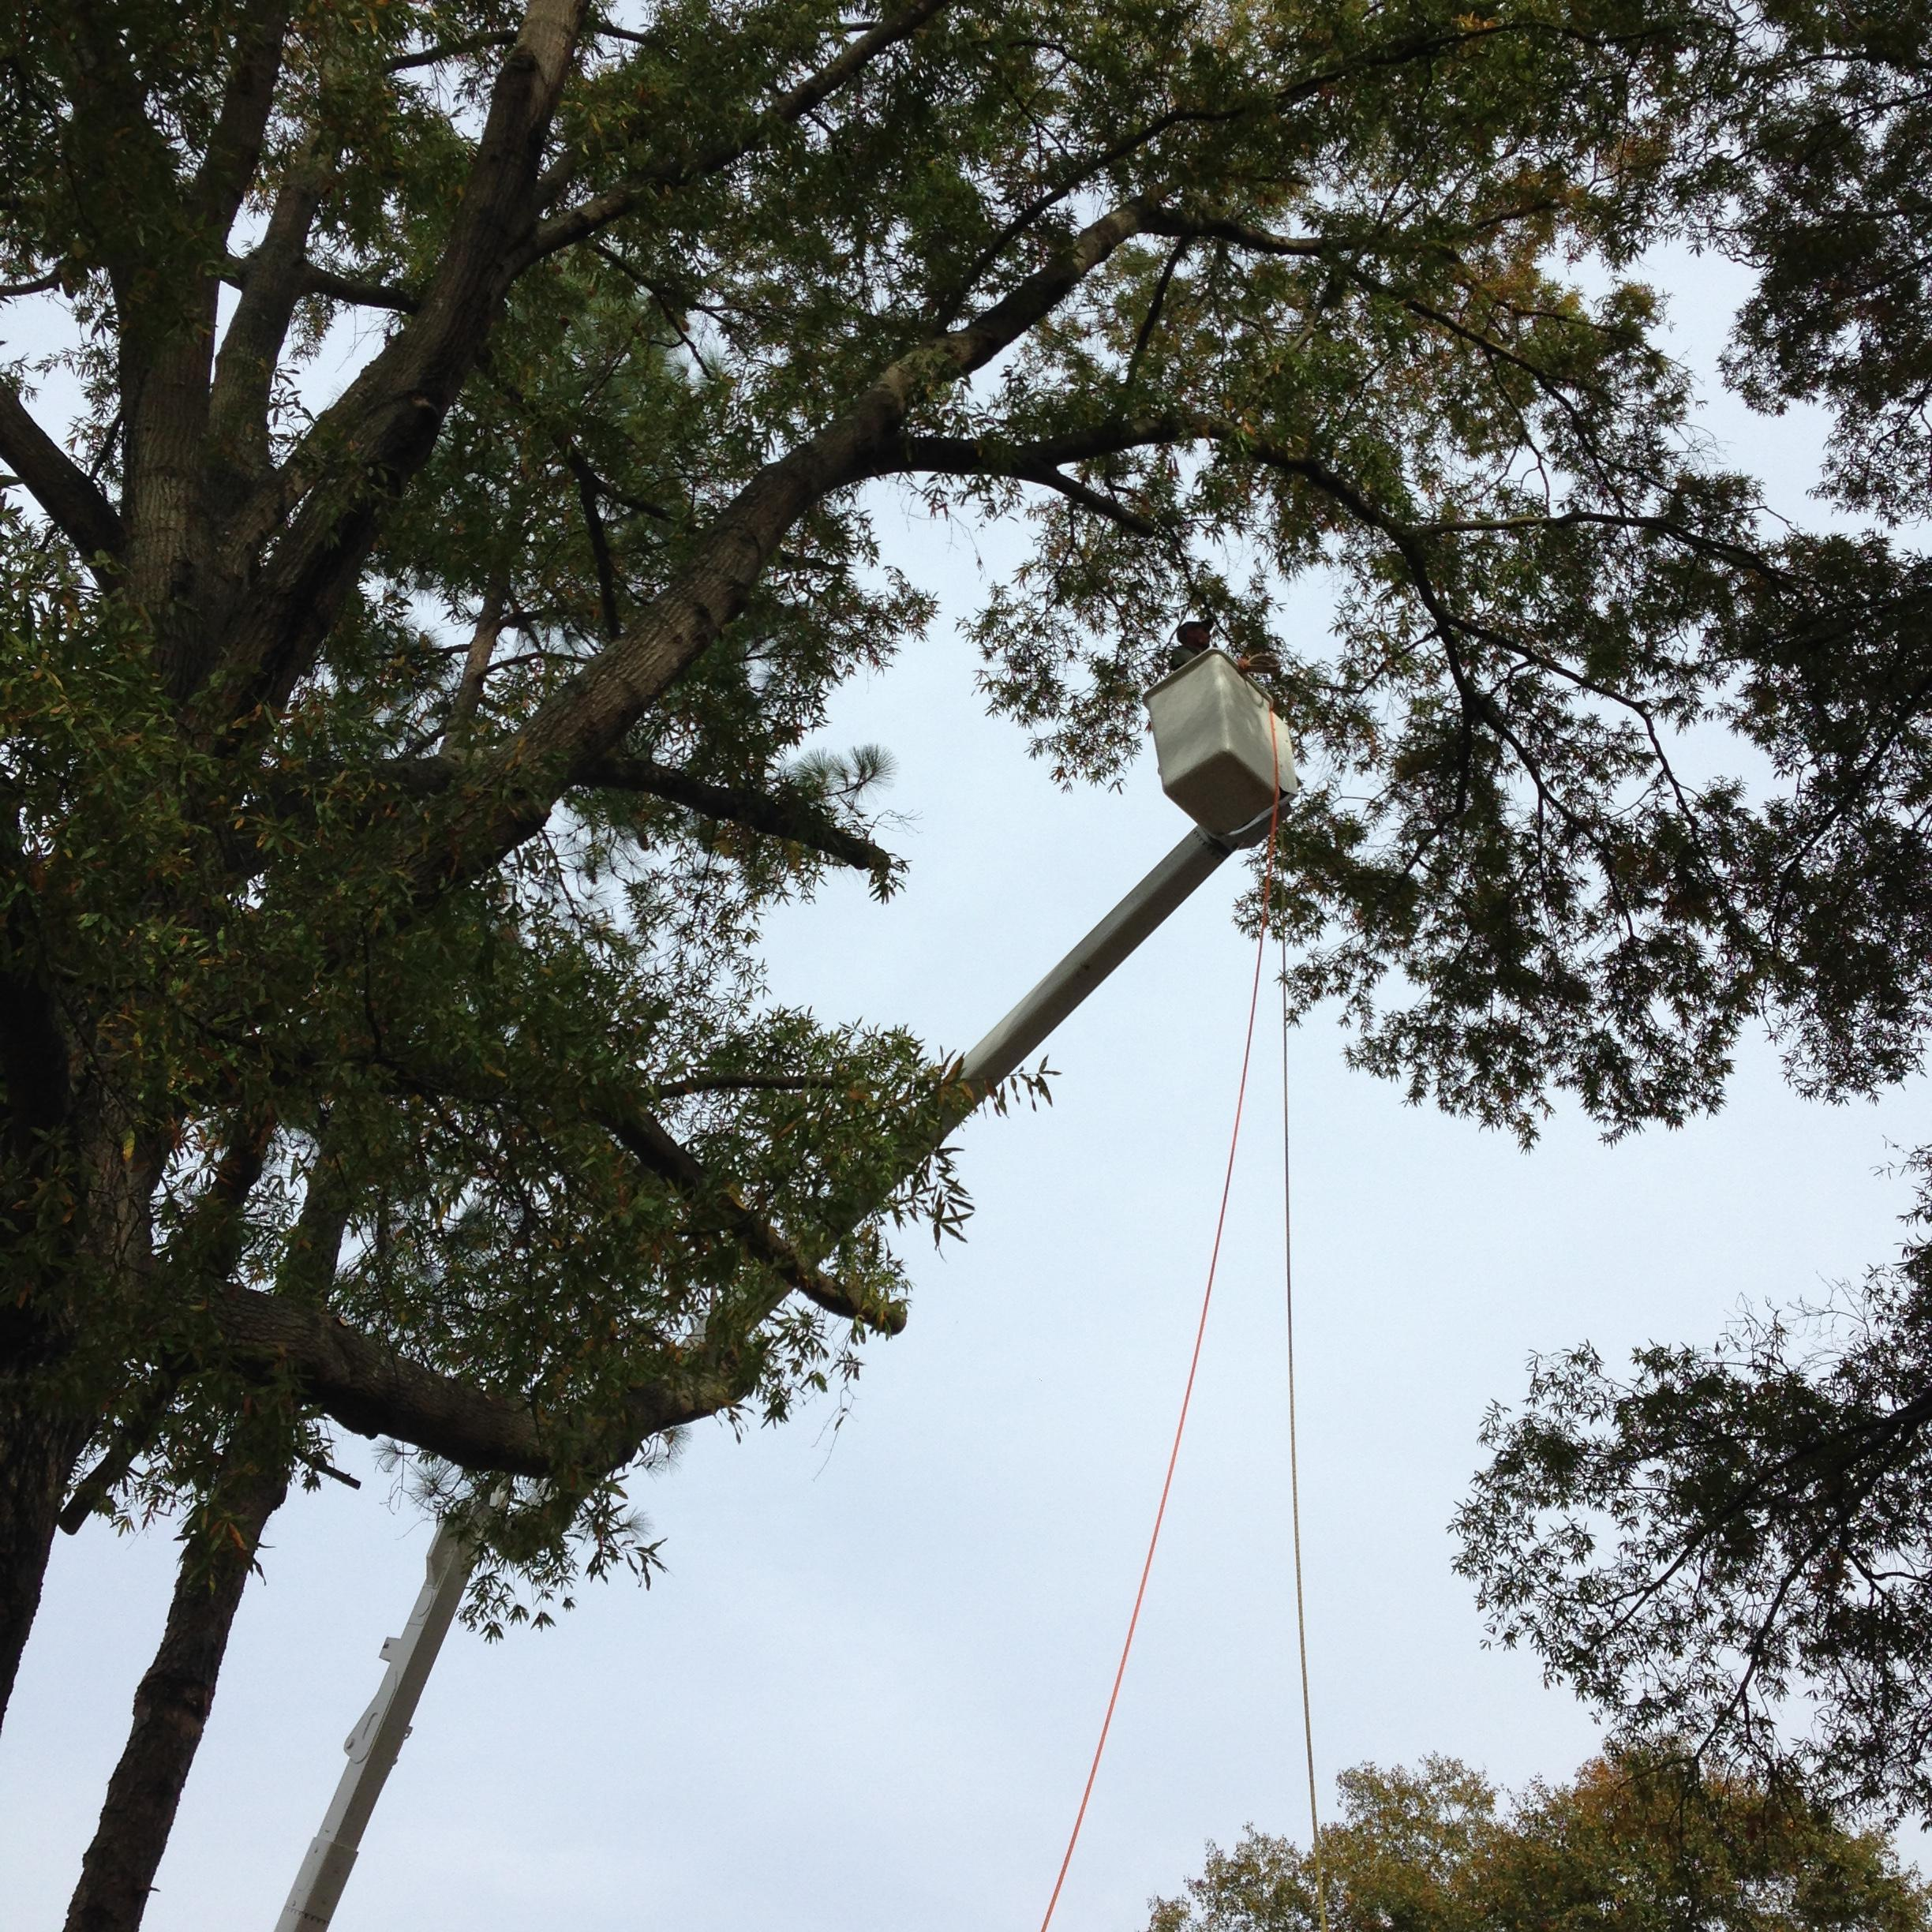 Airborne Tree Service & Relandscaping